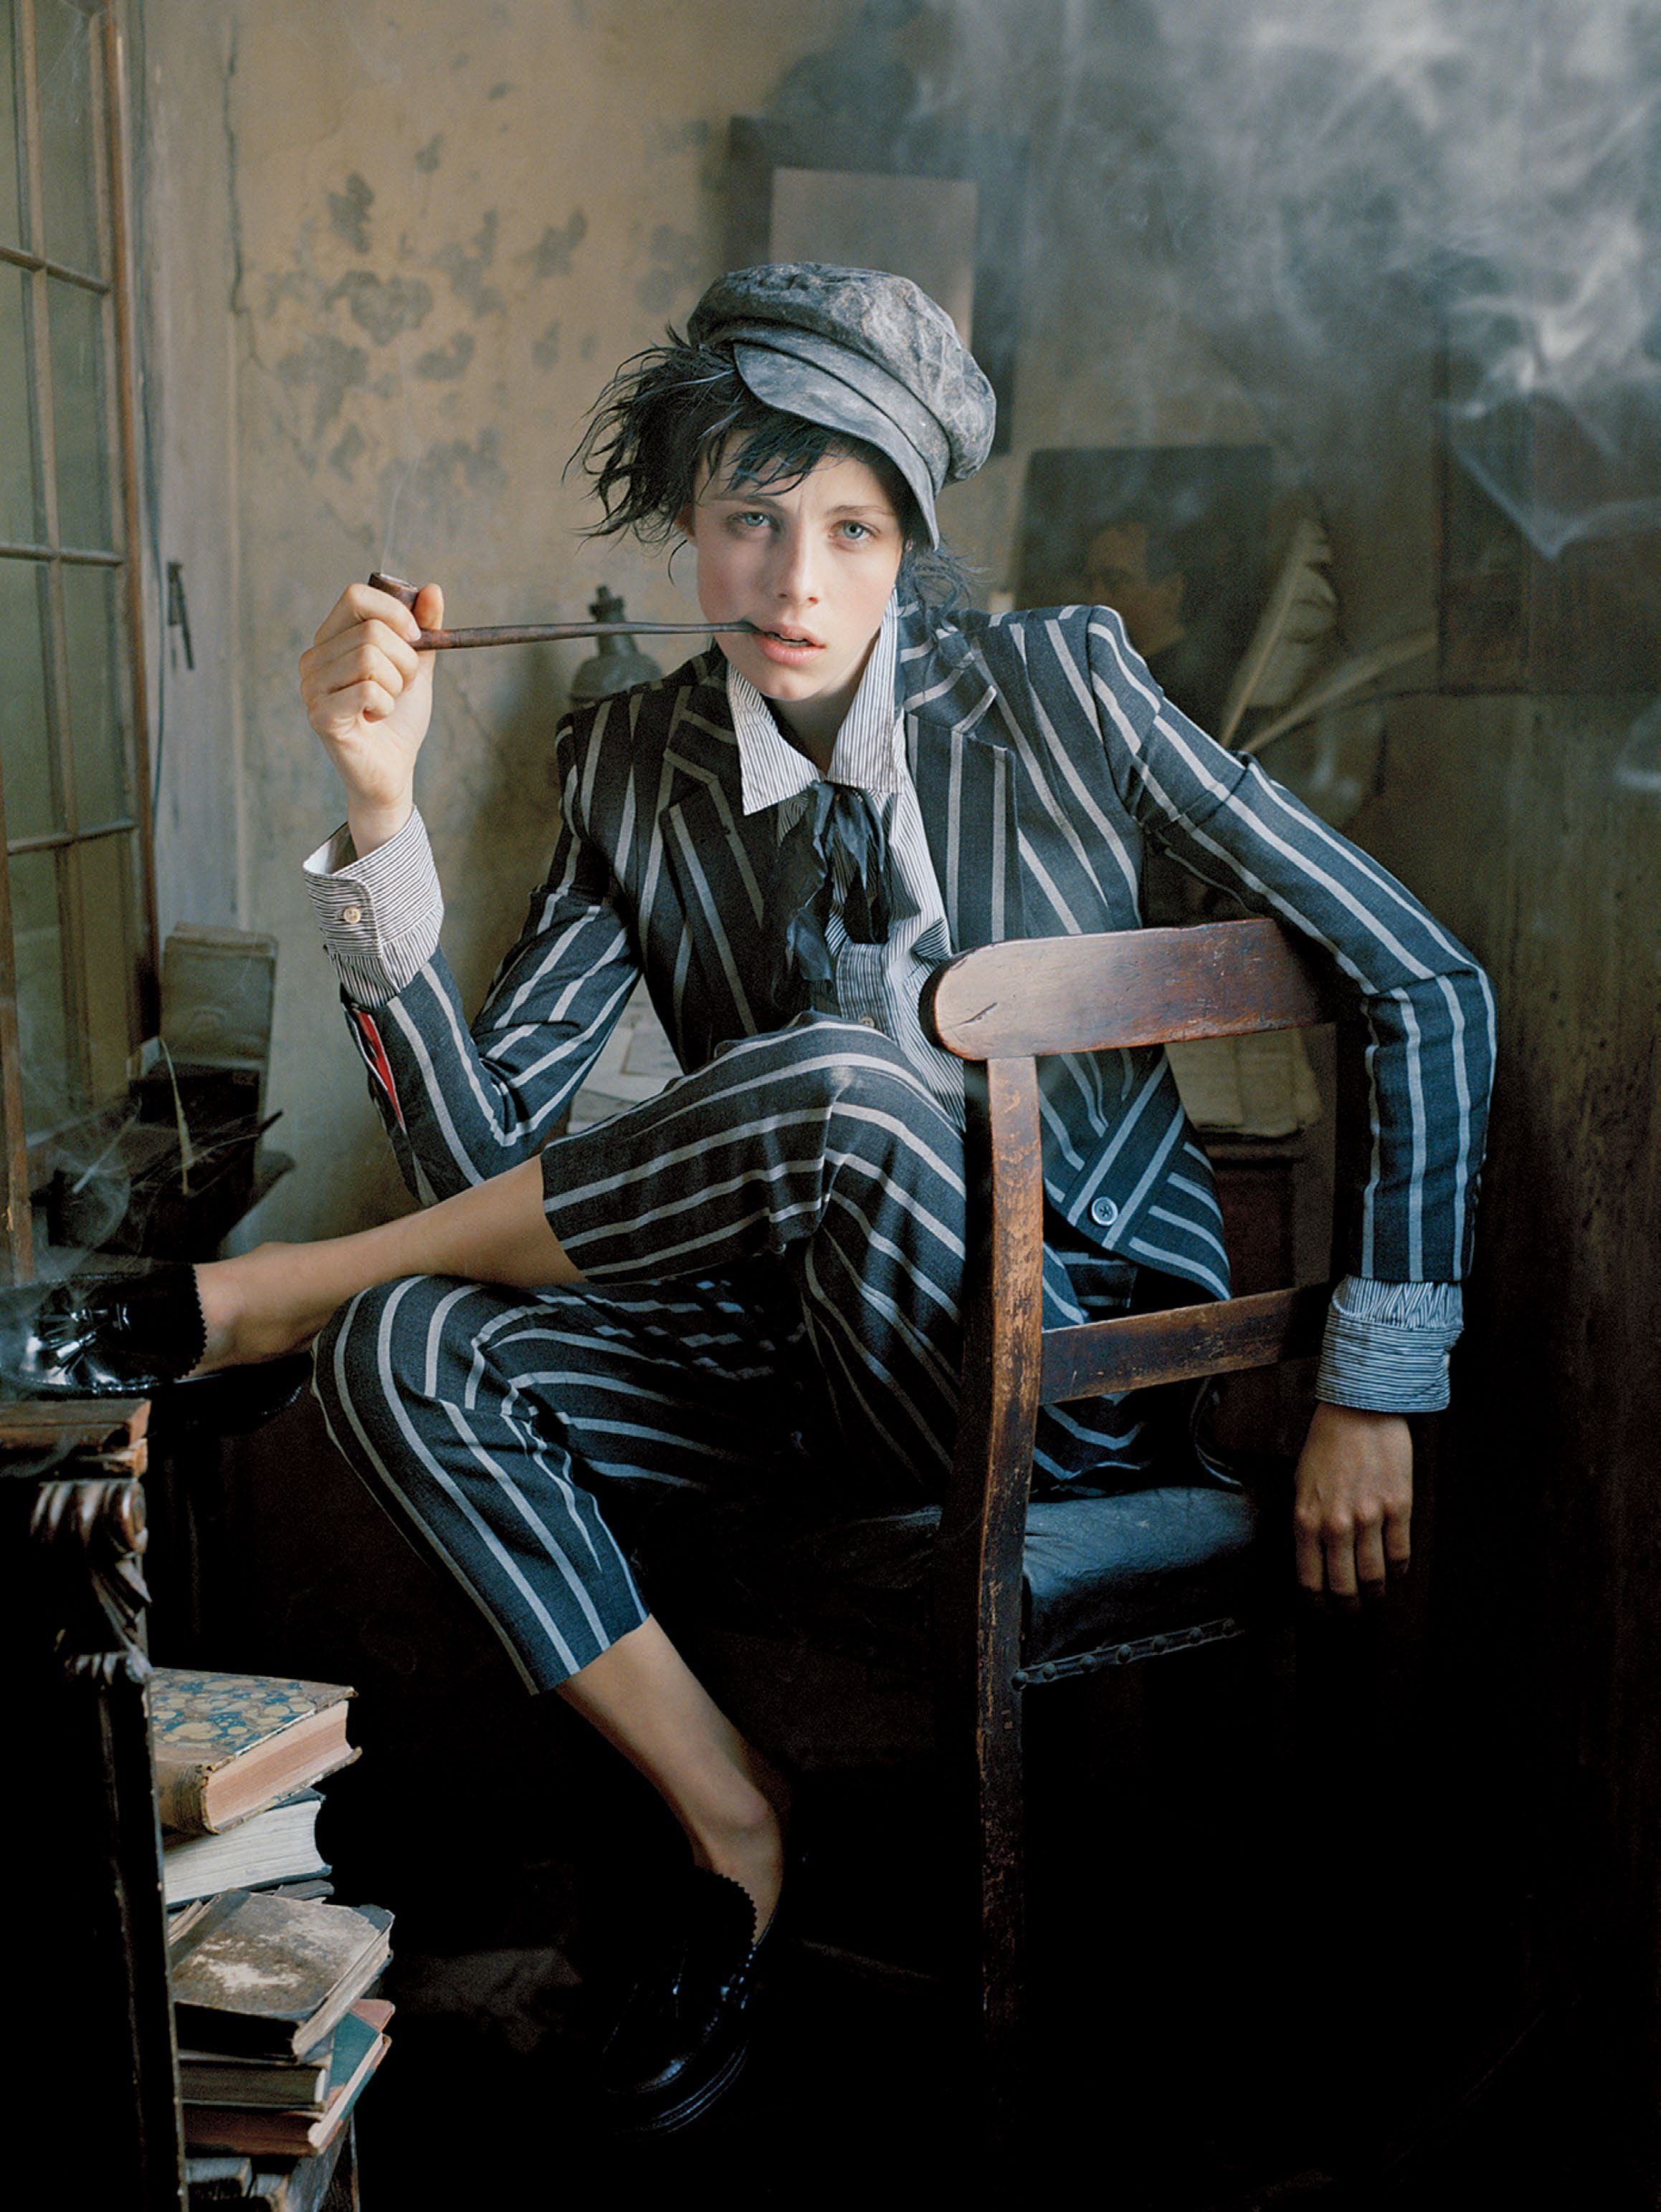 Edie Campbell   Photography by Tim Walker   For Vogue